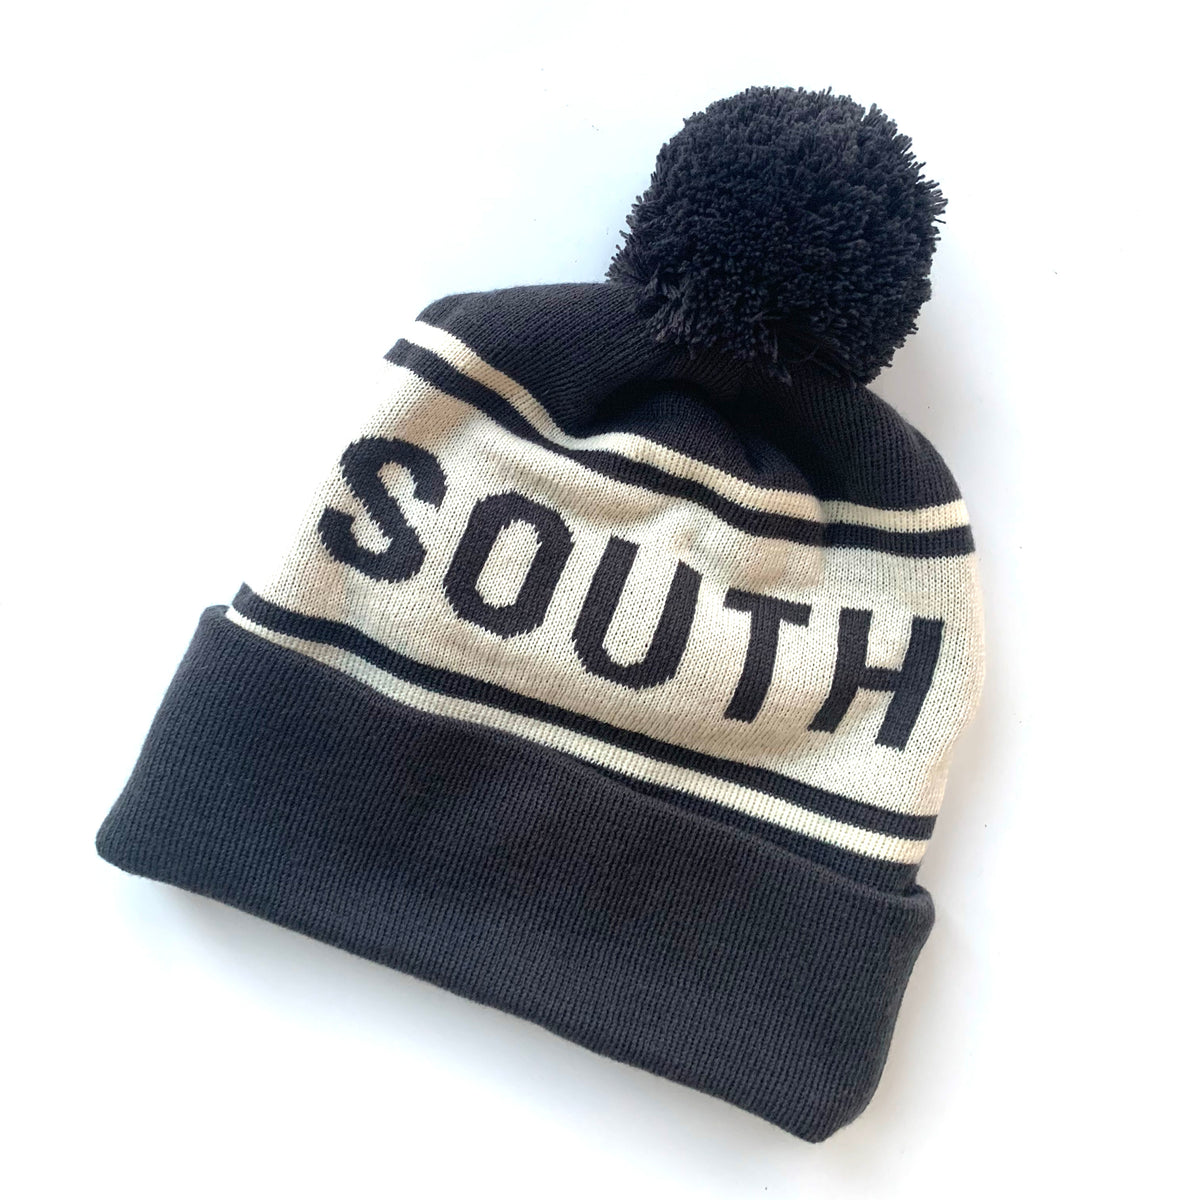 South Knit Beanie